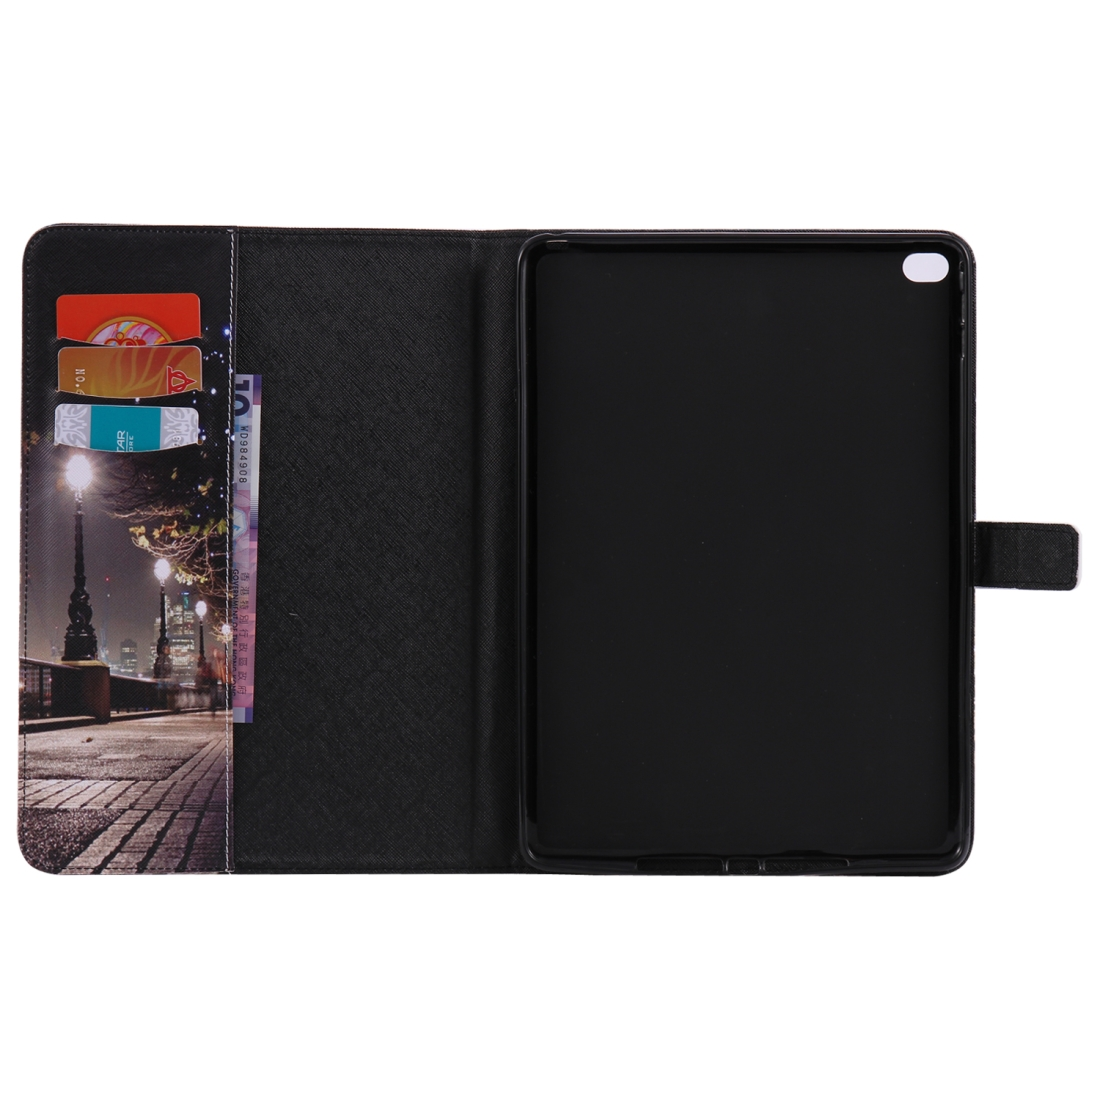 iPad 5th Generation Case Fits iPad 5 & 6, Leather Cover, With Slim Profile & Auto Sleep (Cityscape)